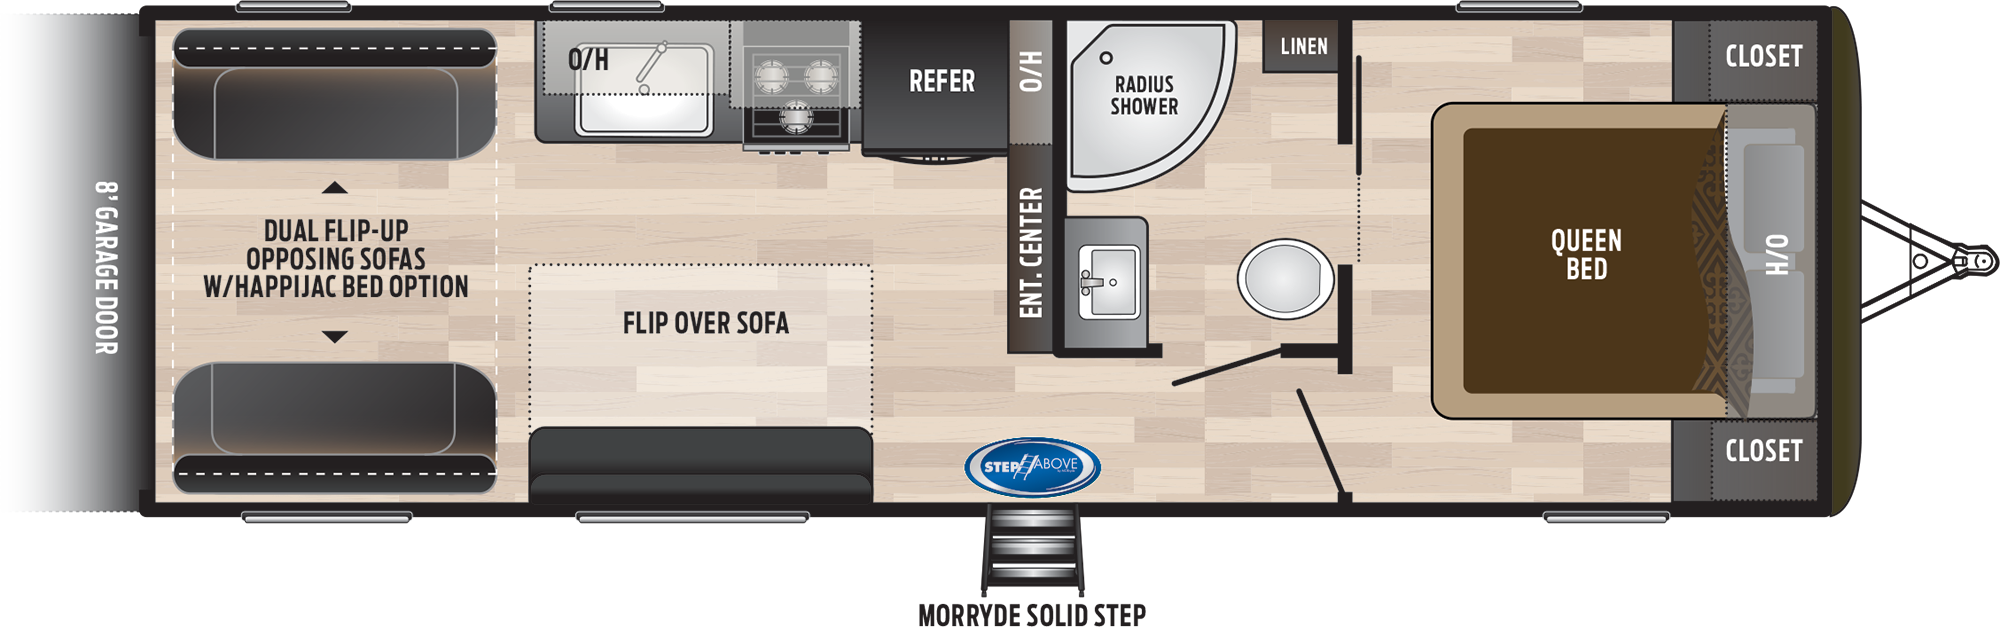 2019 KEYSTONE HIDEOUT 25TH (bunks) Floorplan